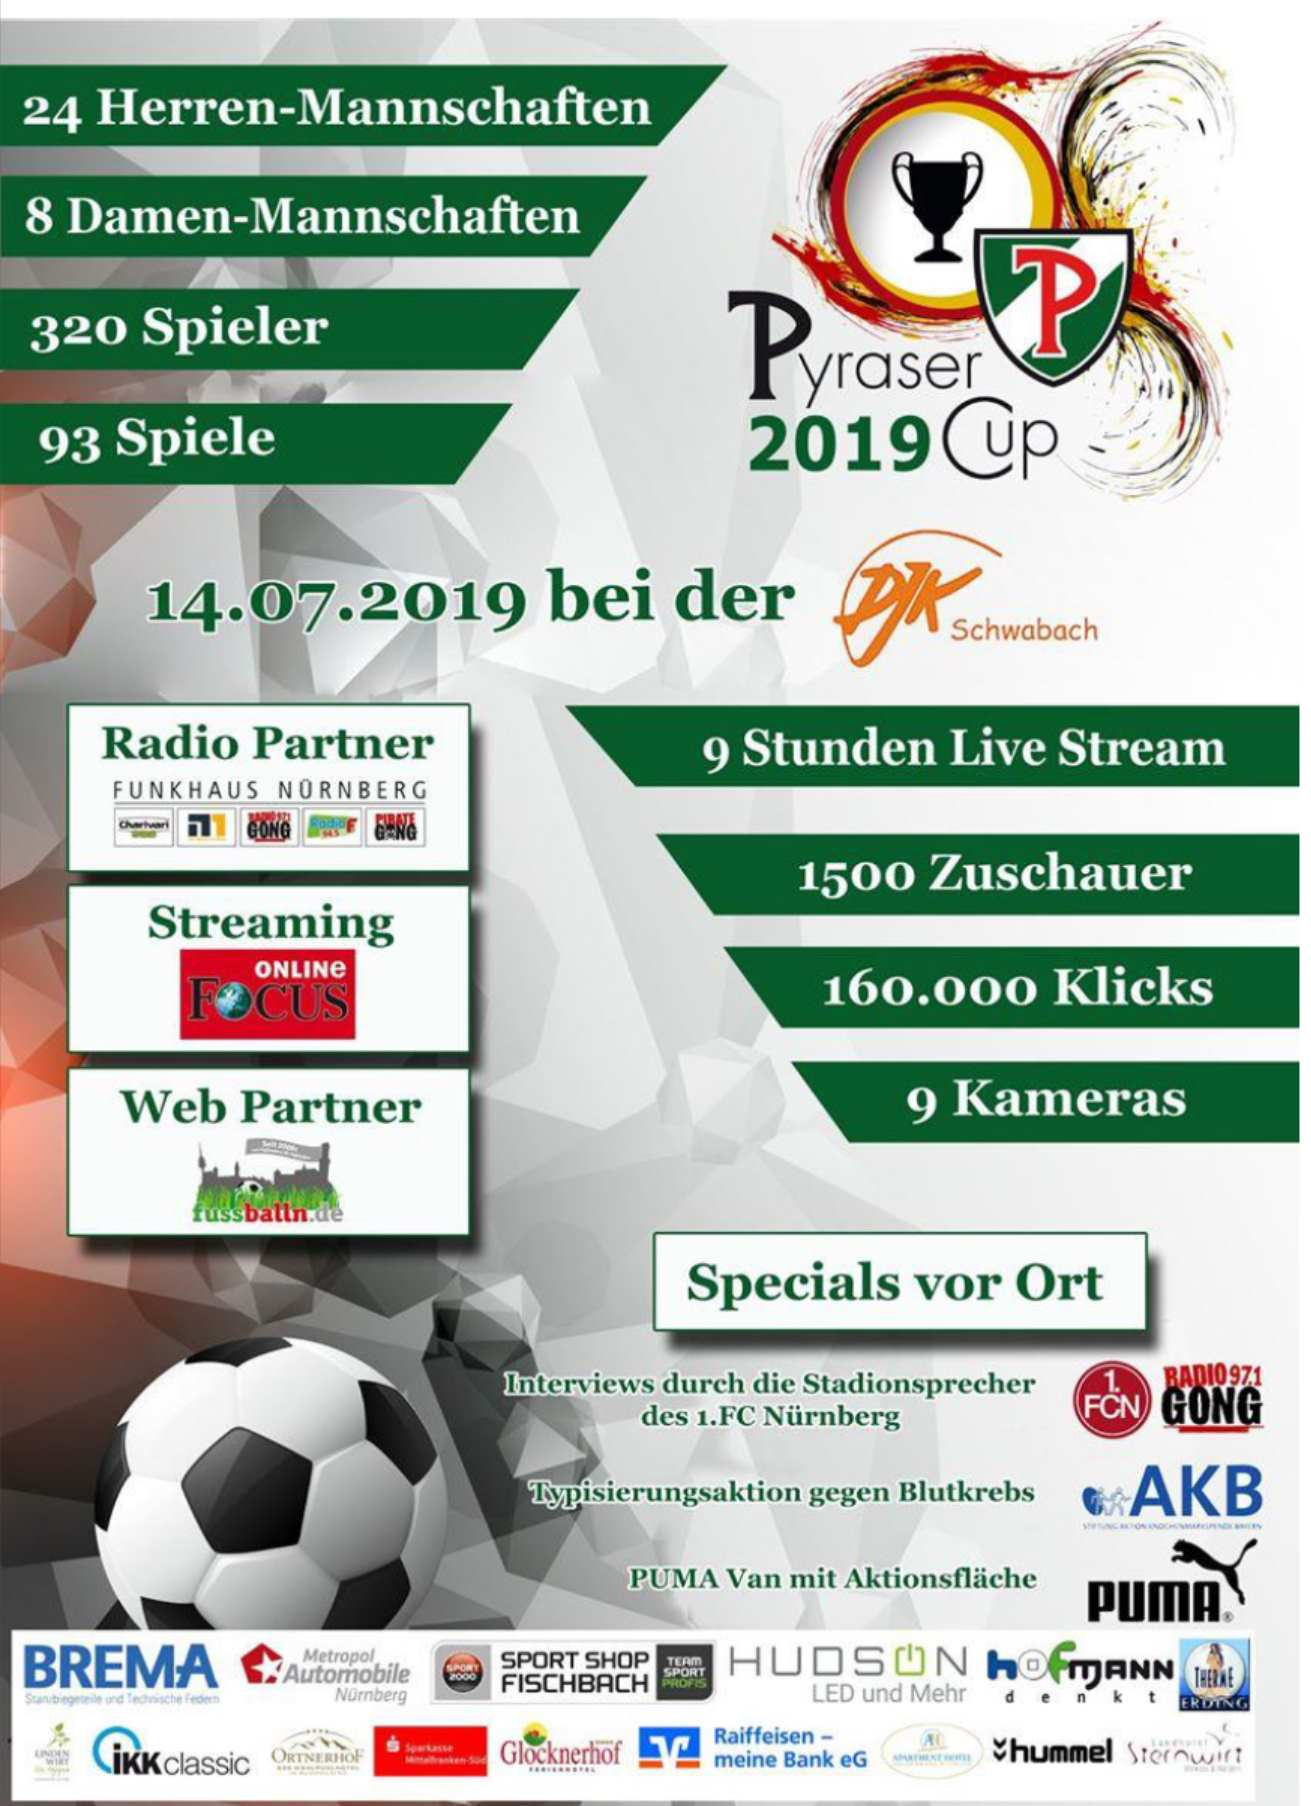 Pyraser Cup 2019